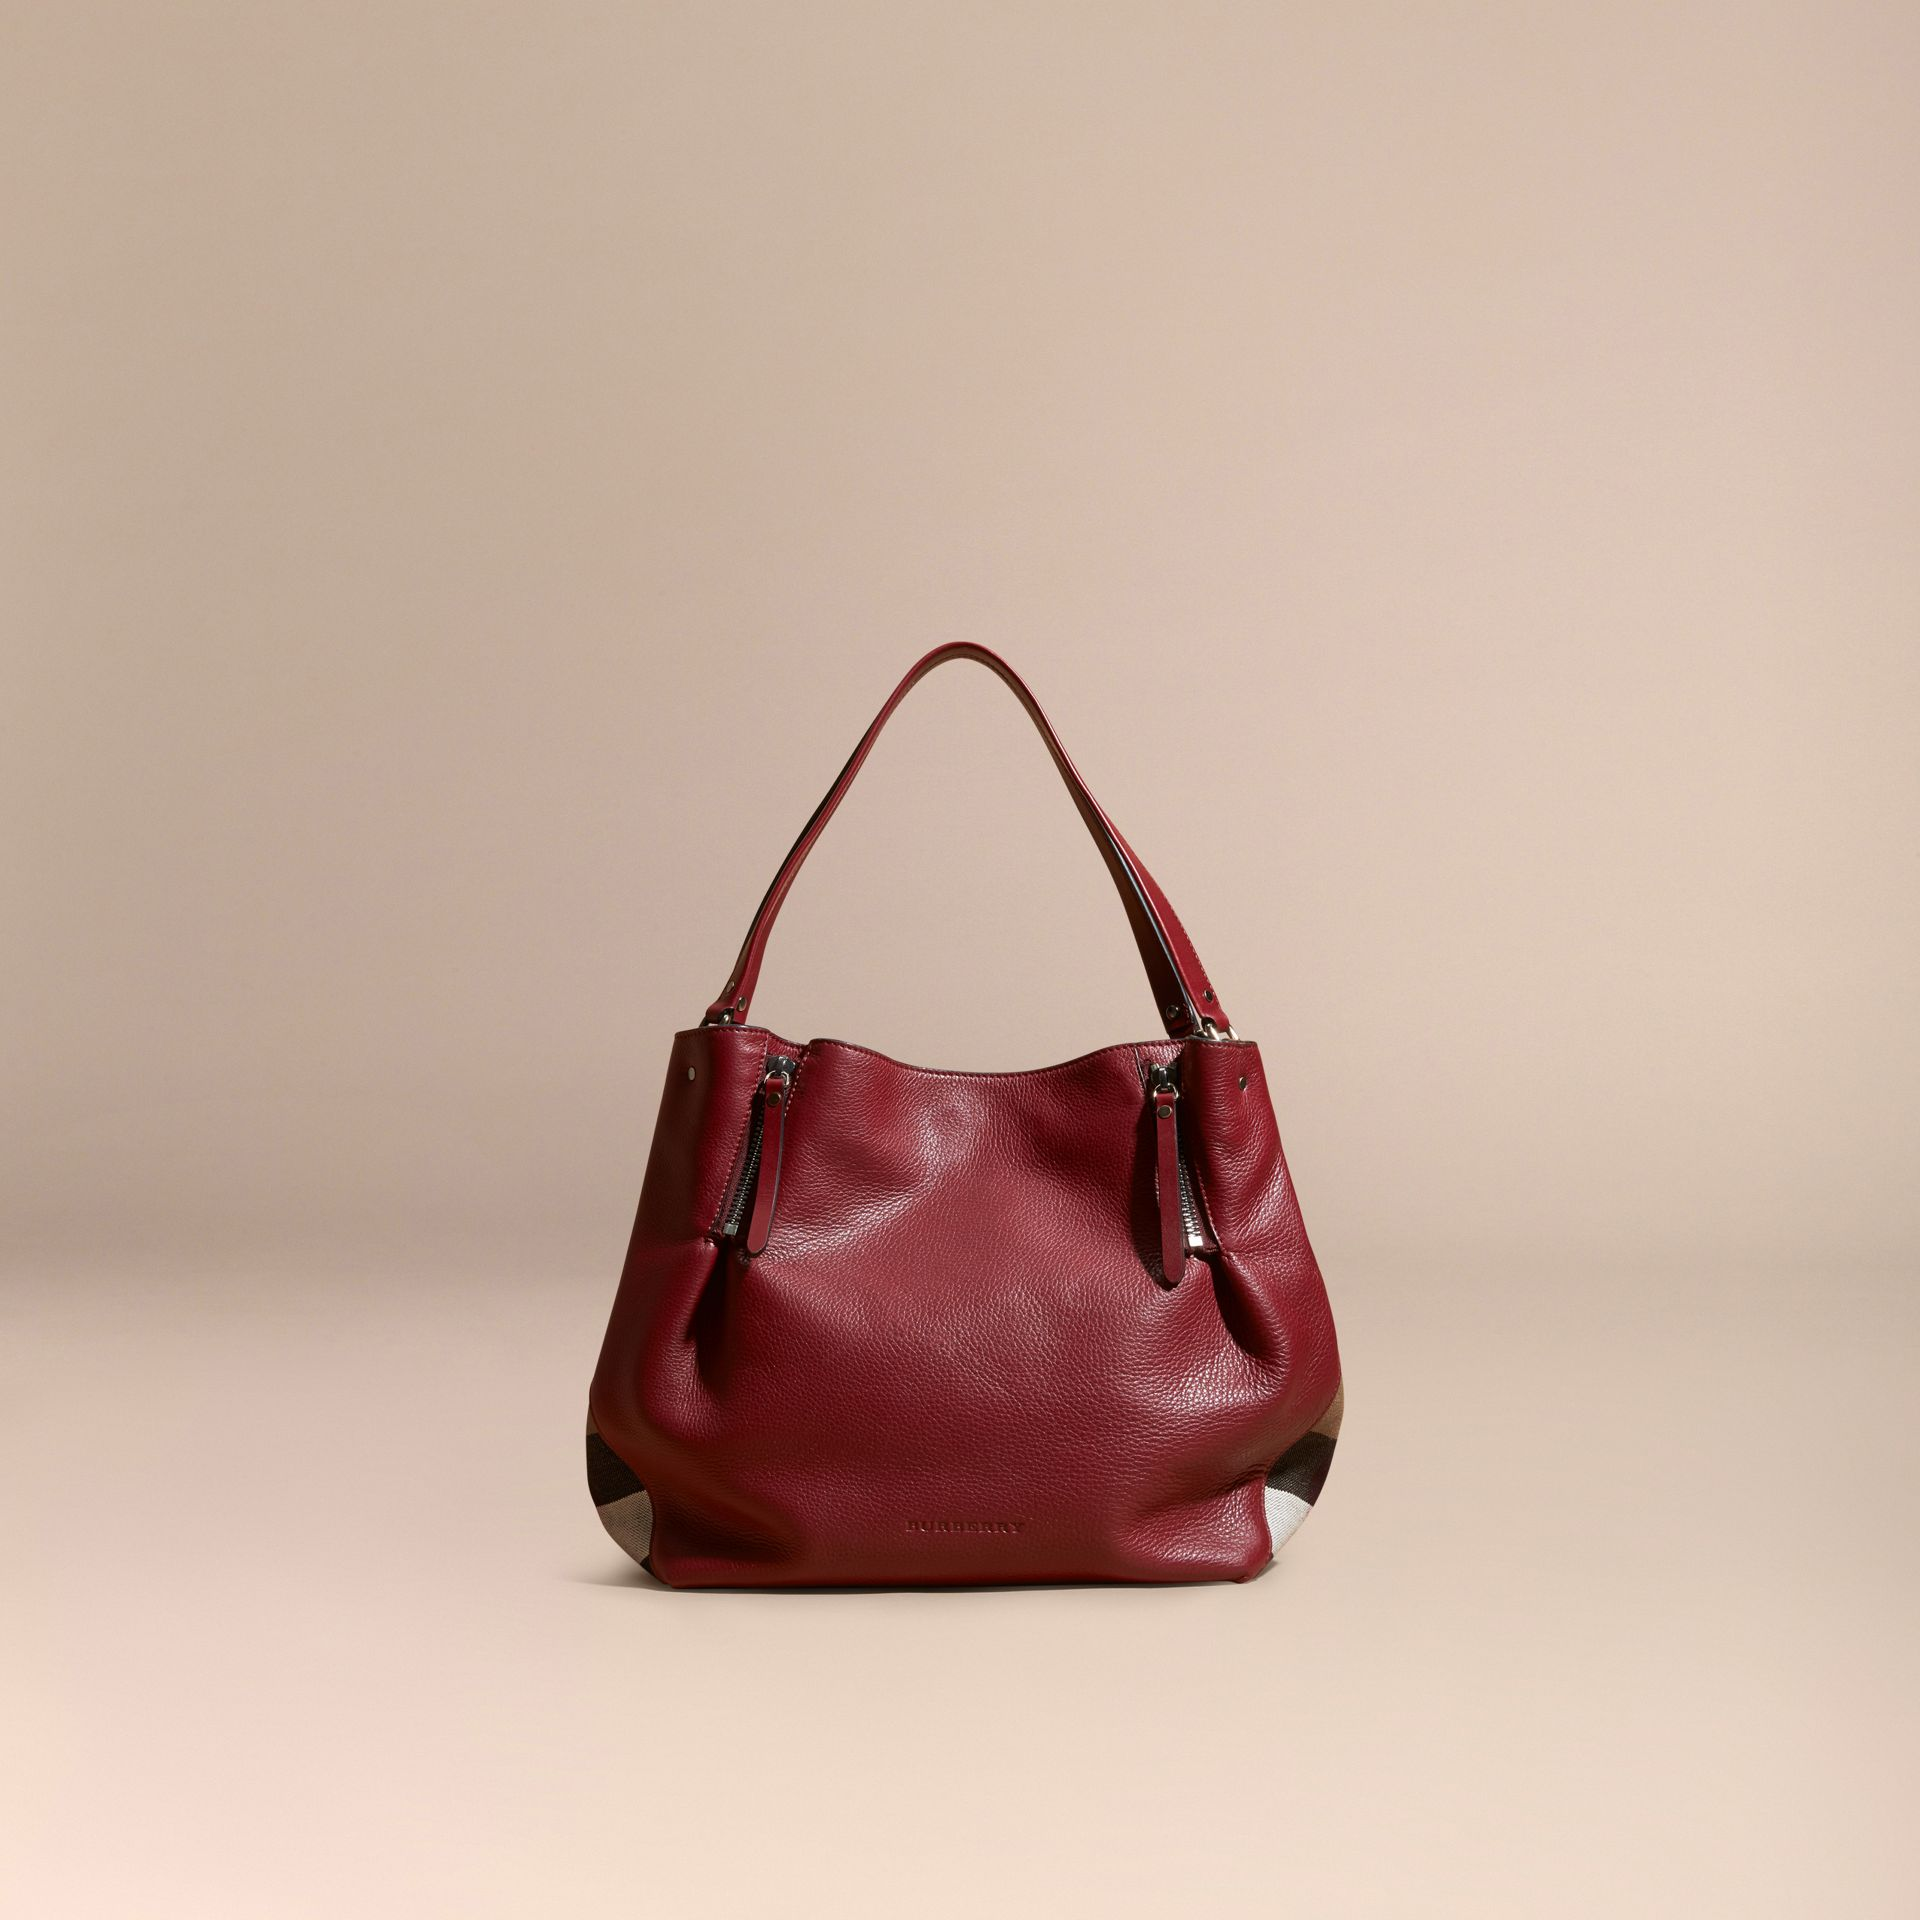 Rouge bourgogne Sac tote medium en cuir orné de touches check - photo de la galerie 8